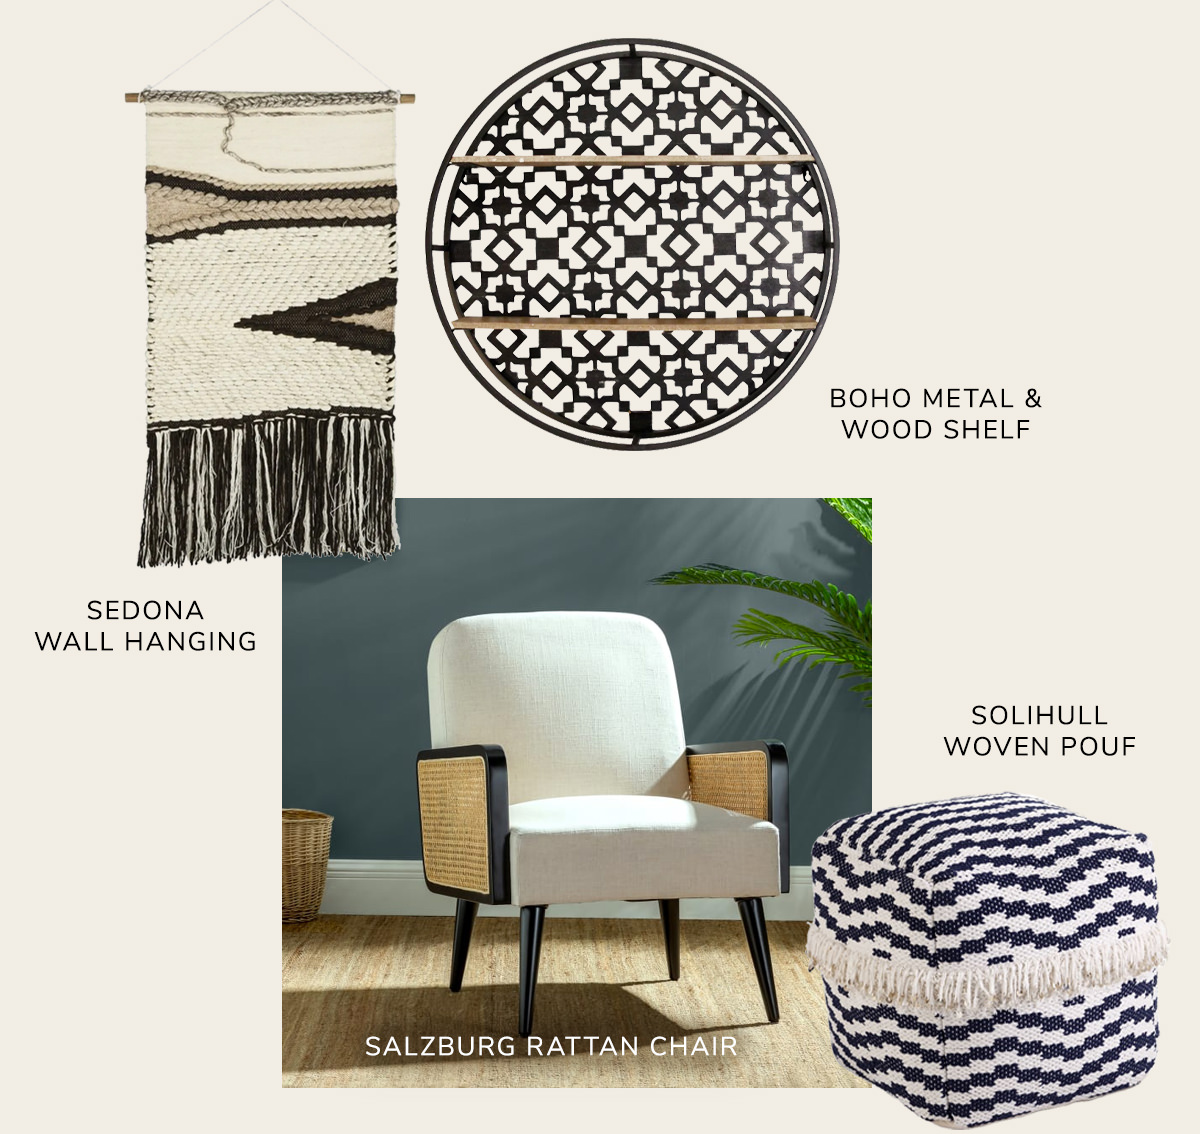 Round Black Boho Metal and Wood Shell, Salzburg Armchair, Sedona Woven Beige Brown Wall Art, Solihull Woven Pouf   SHOP NOW